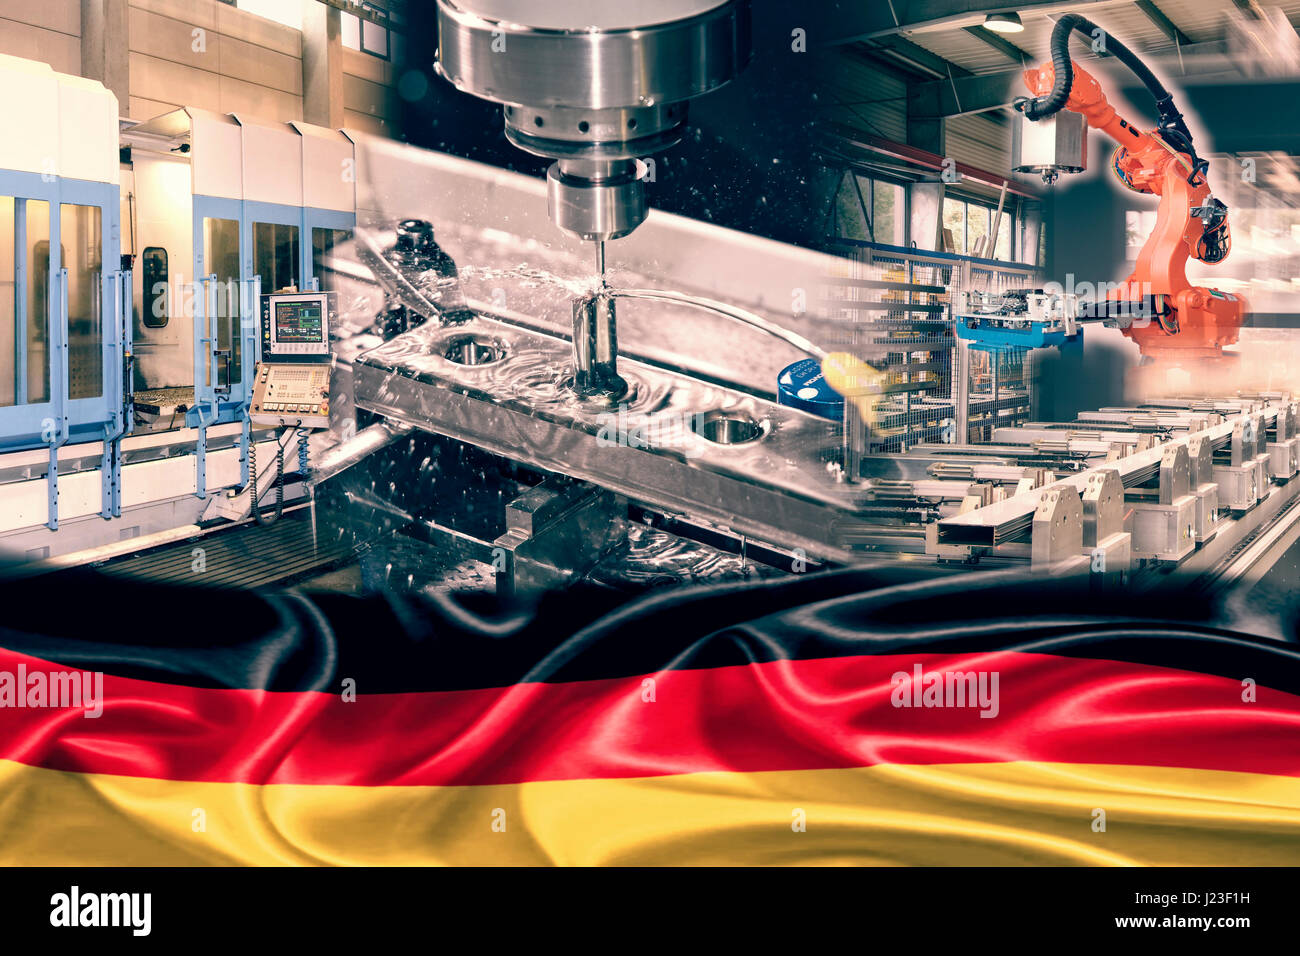 Industrial production and German flag - Stock Image